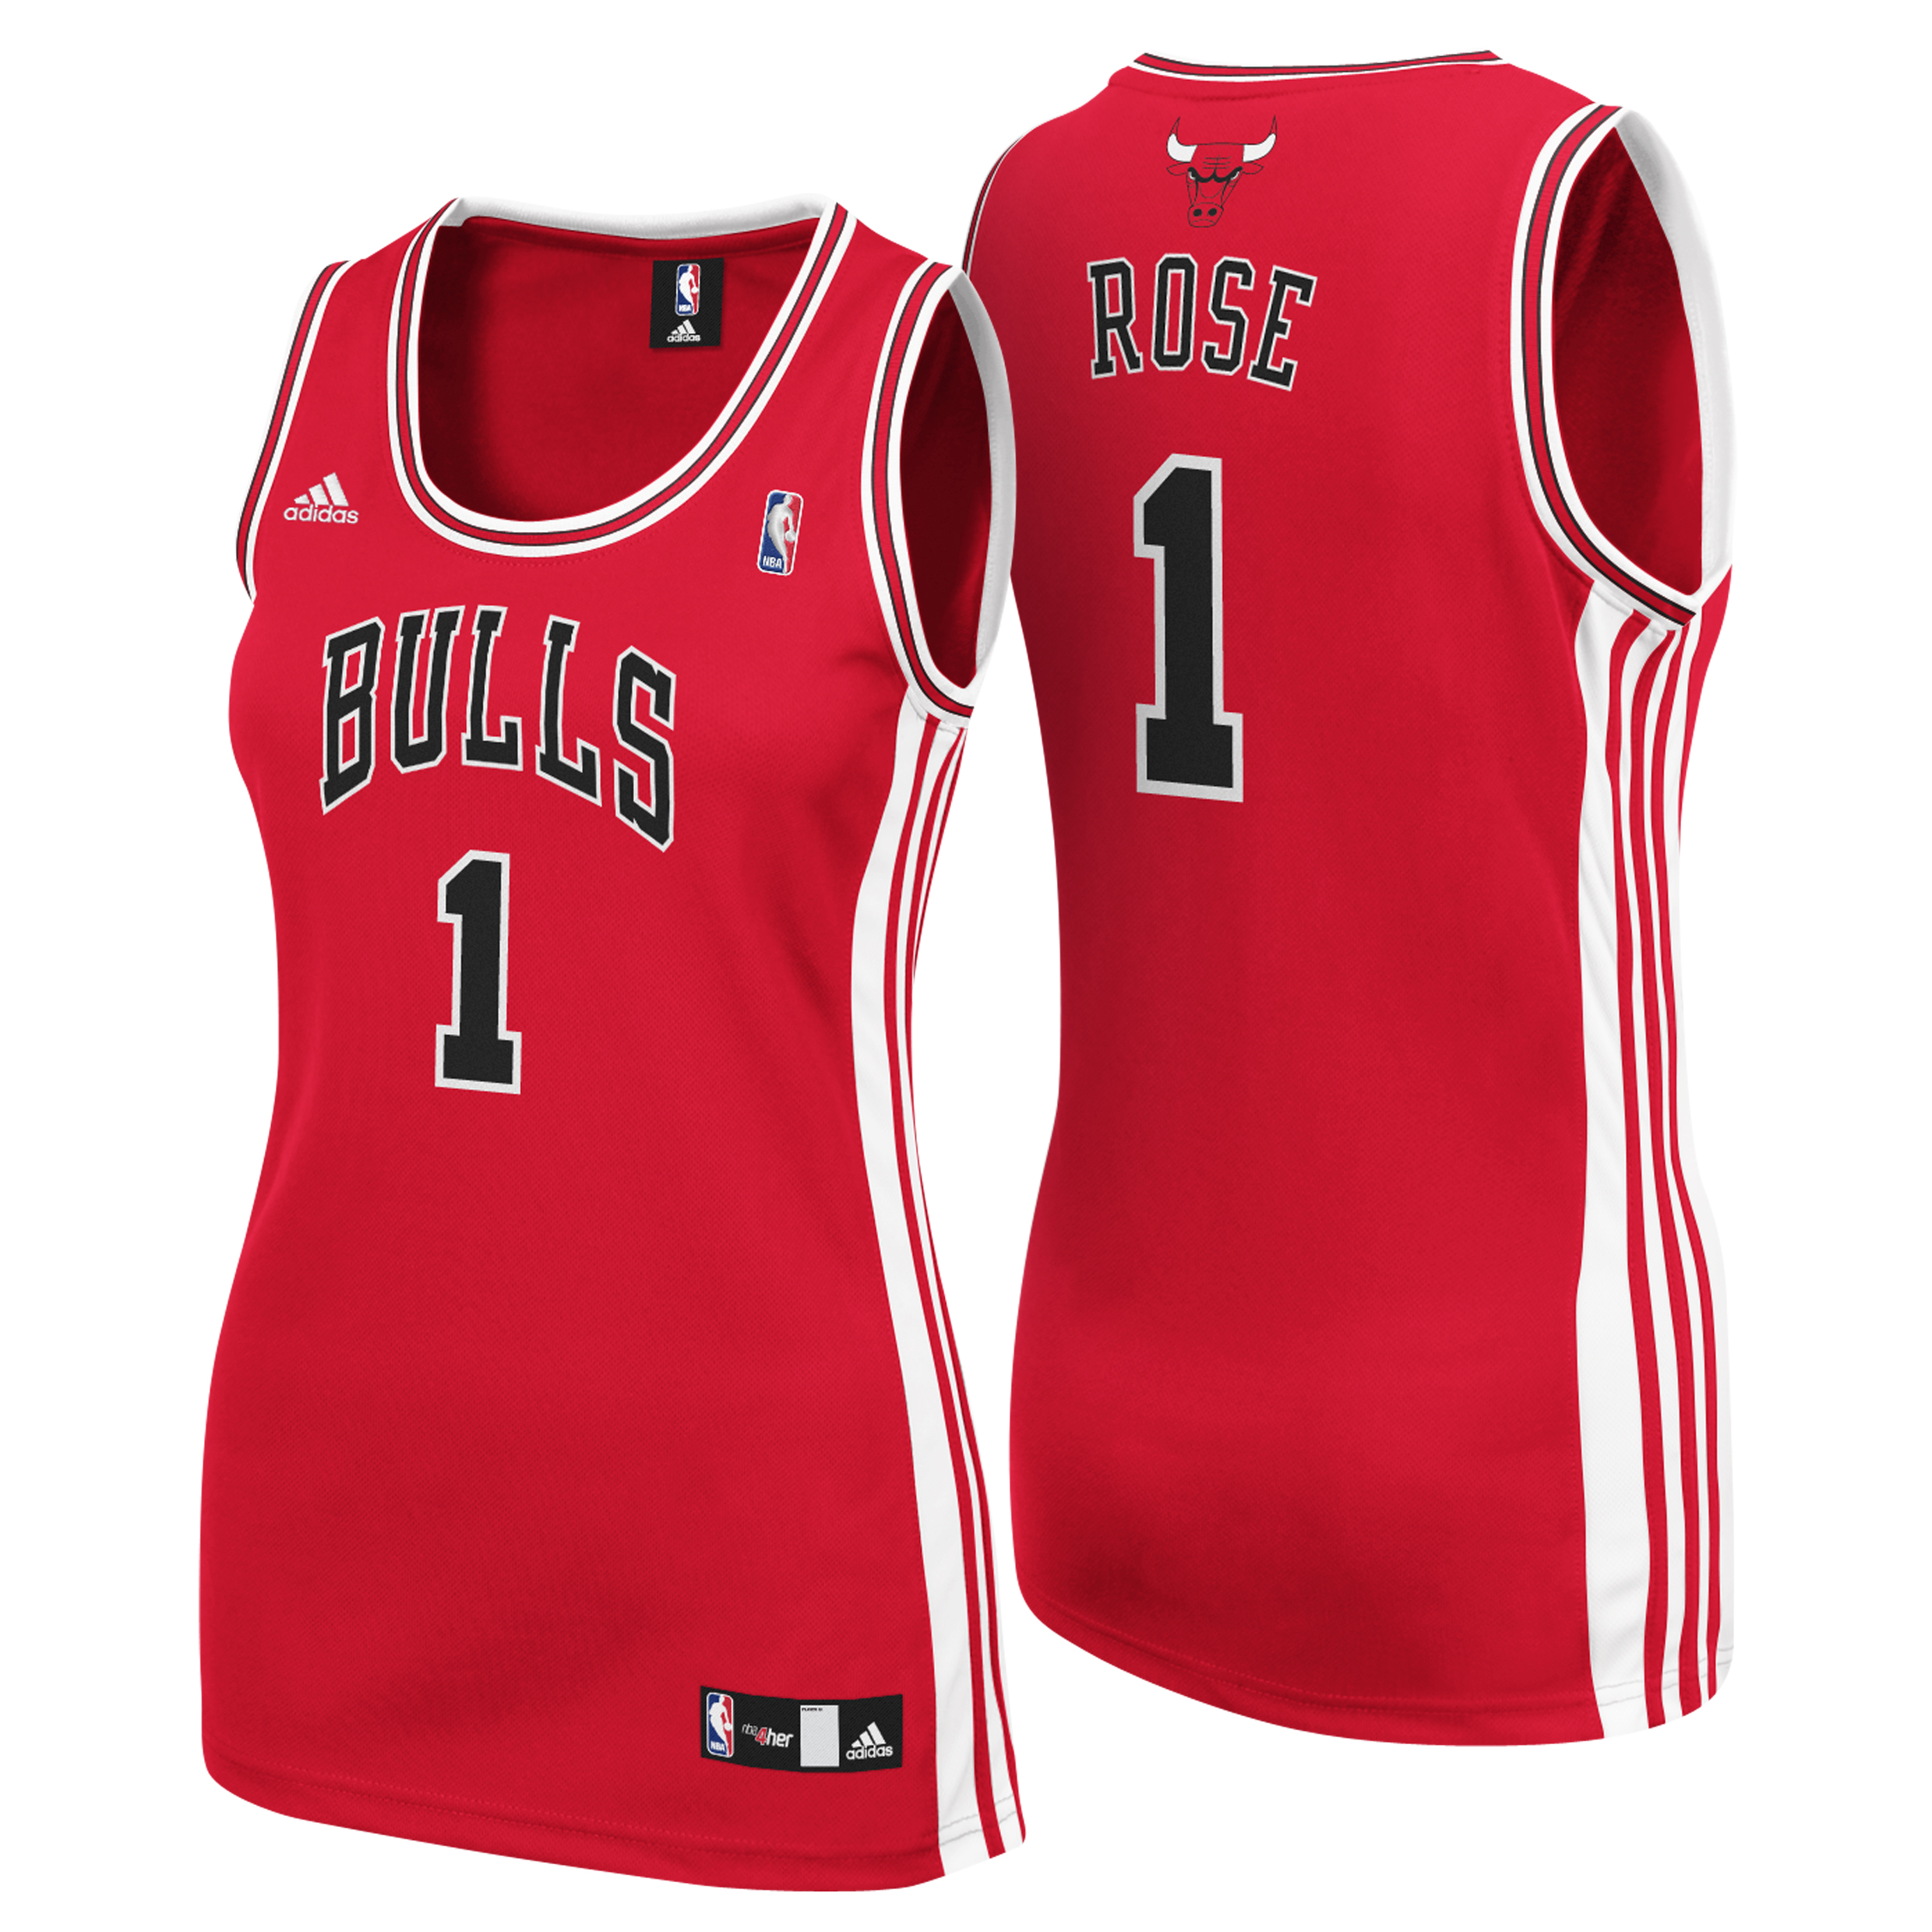 Chicago Bulls Road Replica Jersey - Derrick Rose - Womens